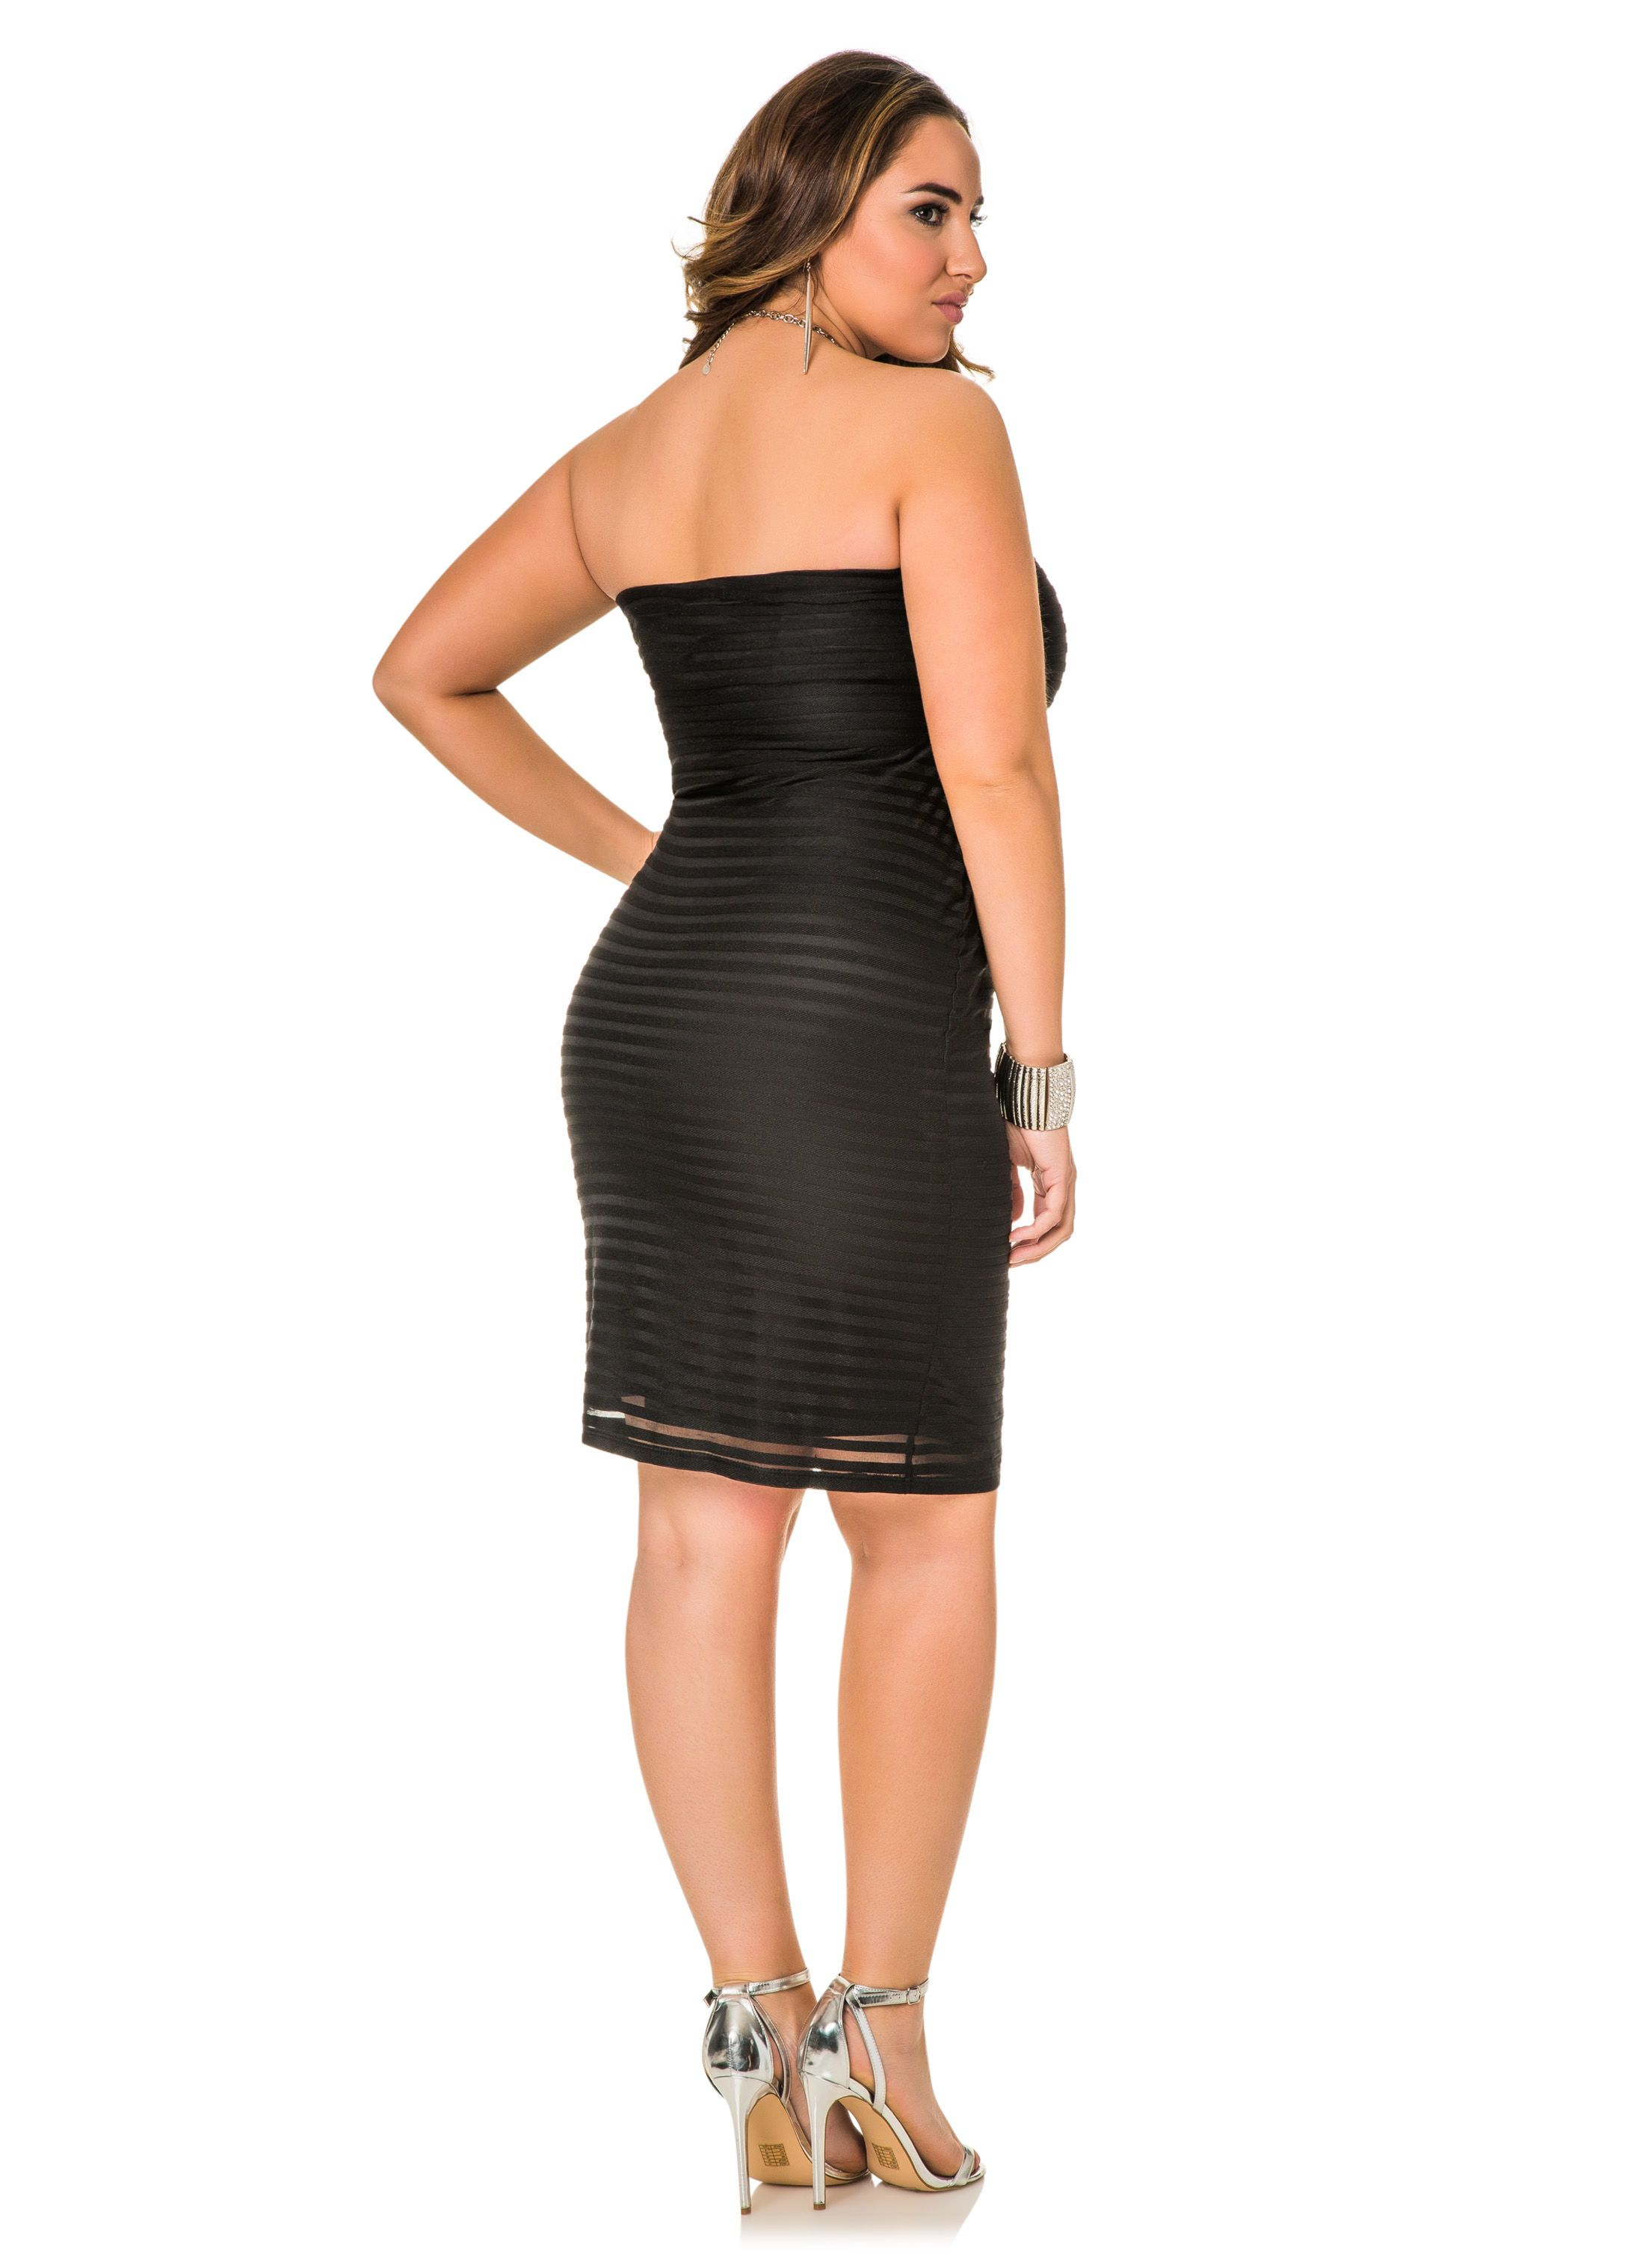 032ebedc1c5 Mesh Shadow Stripe Tube Middi Skirt - Ashley Stewart